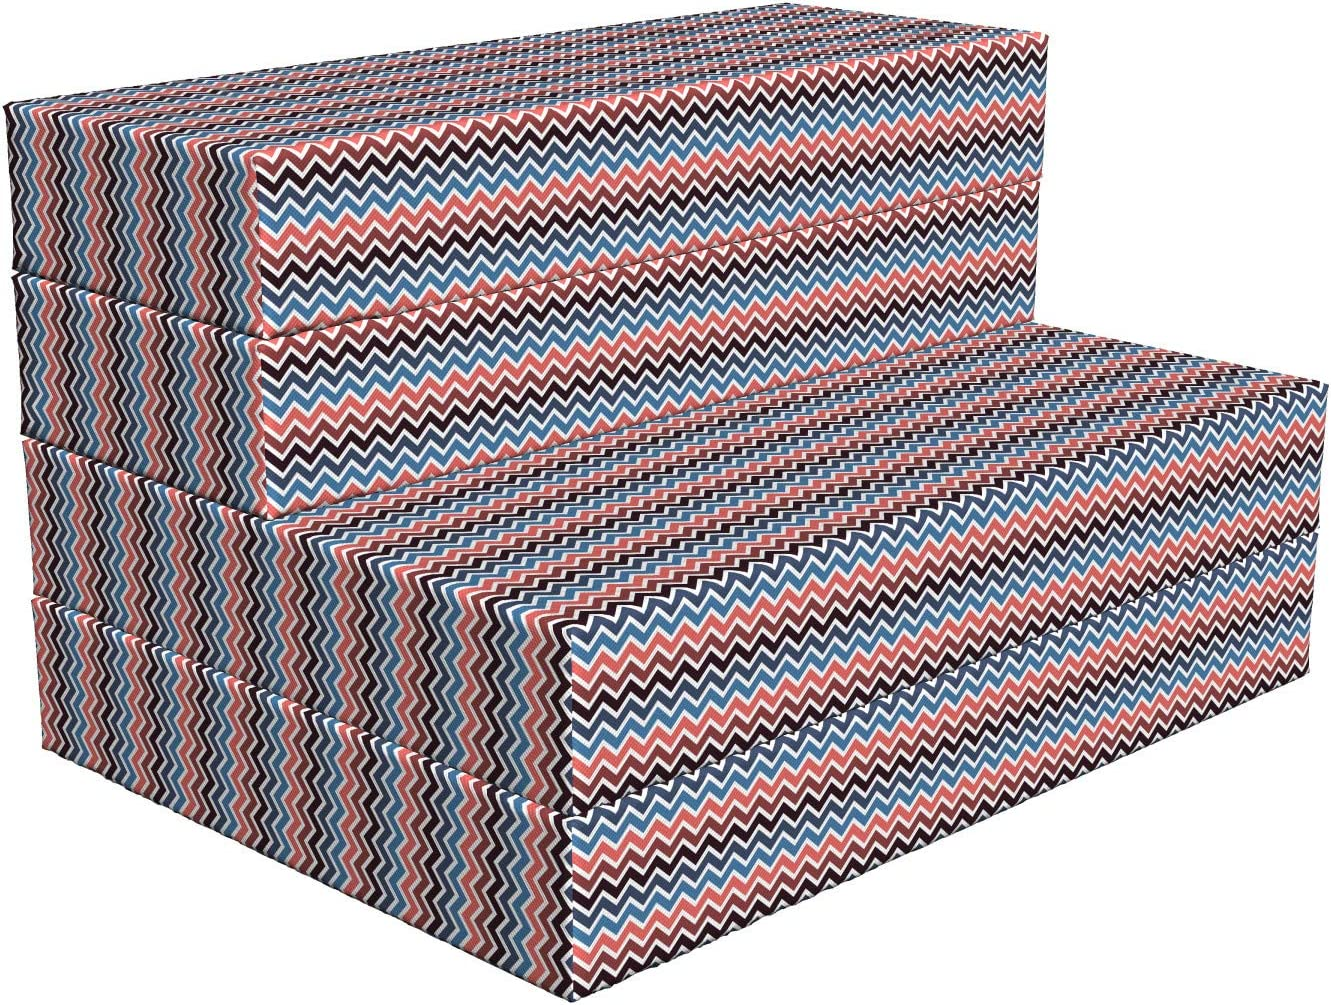 Lunarable Chevron Foldable Same day shipping Mattress New Orleans Mall Colors Contrasting 7 Lines